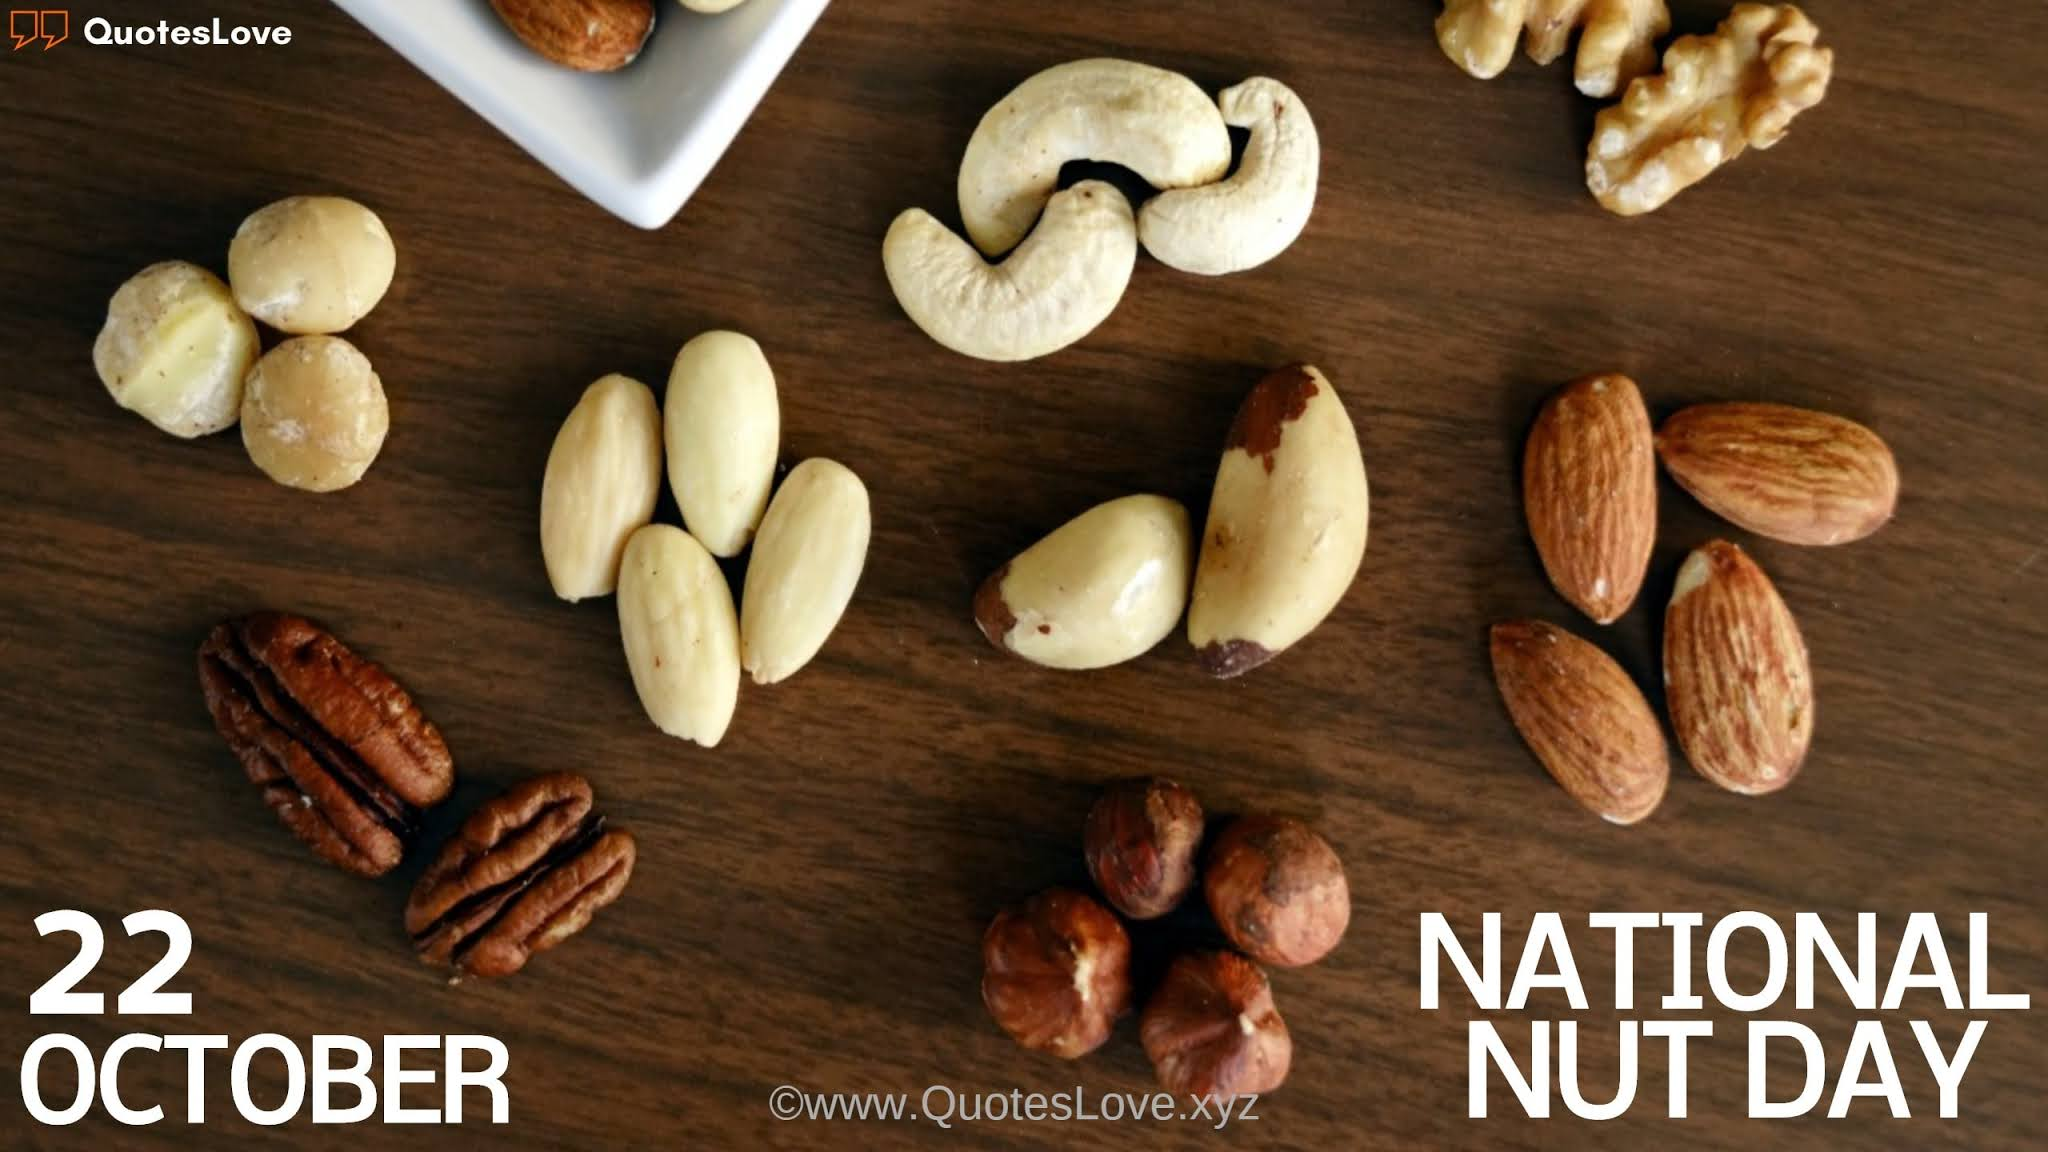 National Nut Day Quotes, Wishes, Images